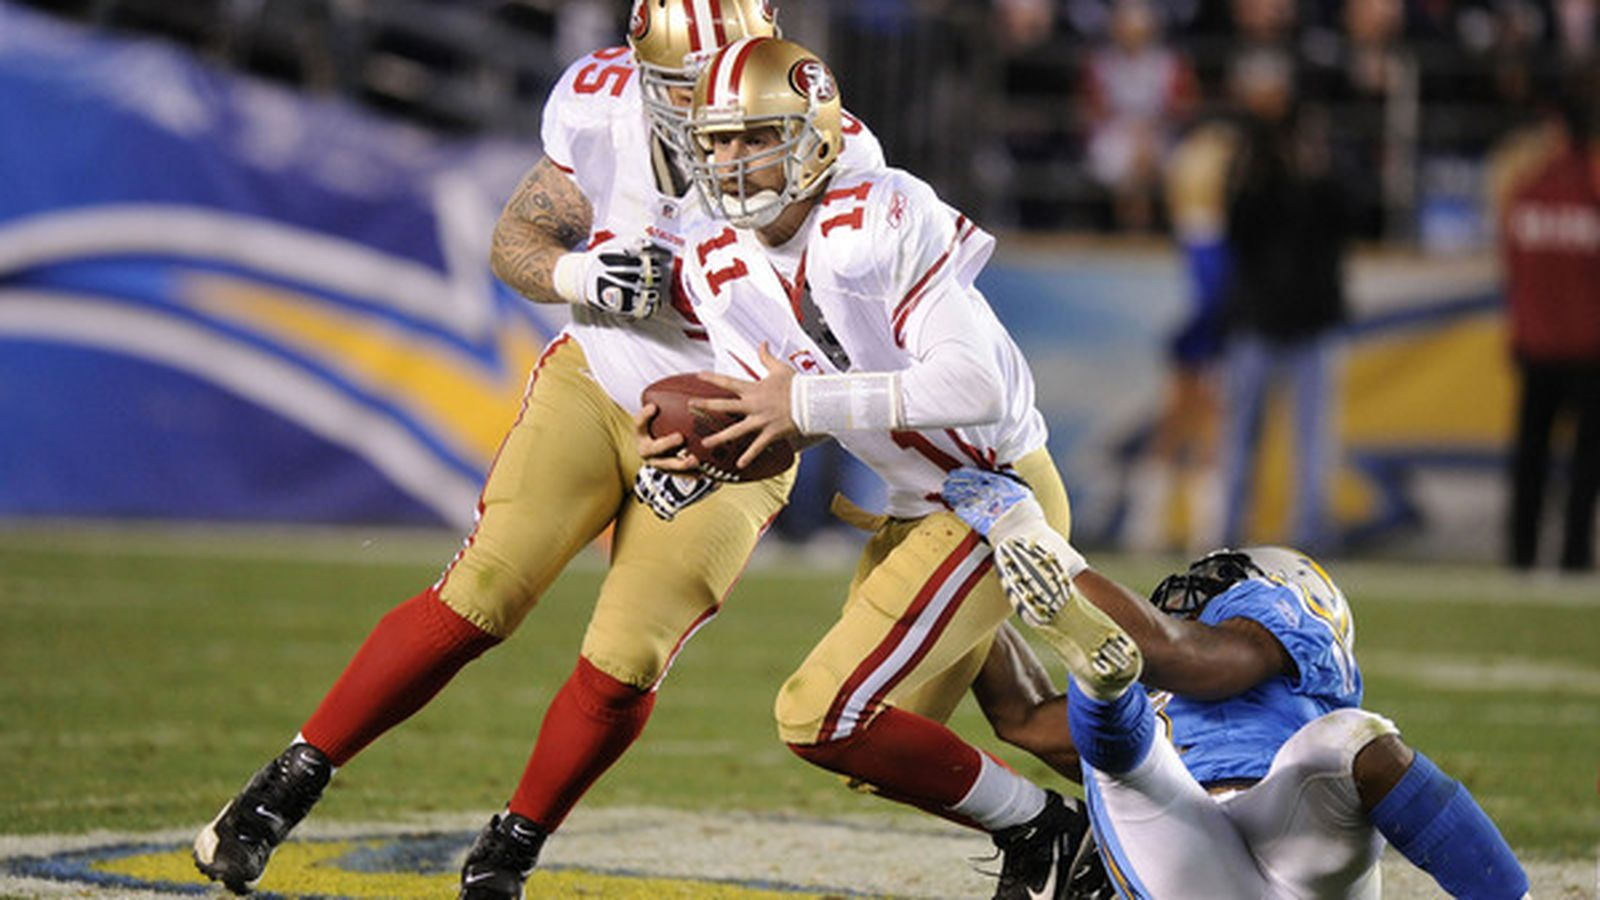 NFL Playoff Scenarios: The 49ers Drag Us Along For The ... | 1600 x 900 jpeg 152kB